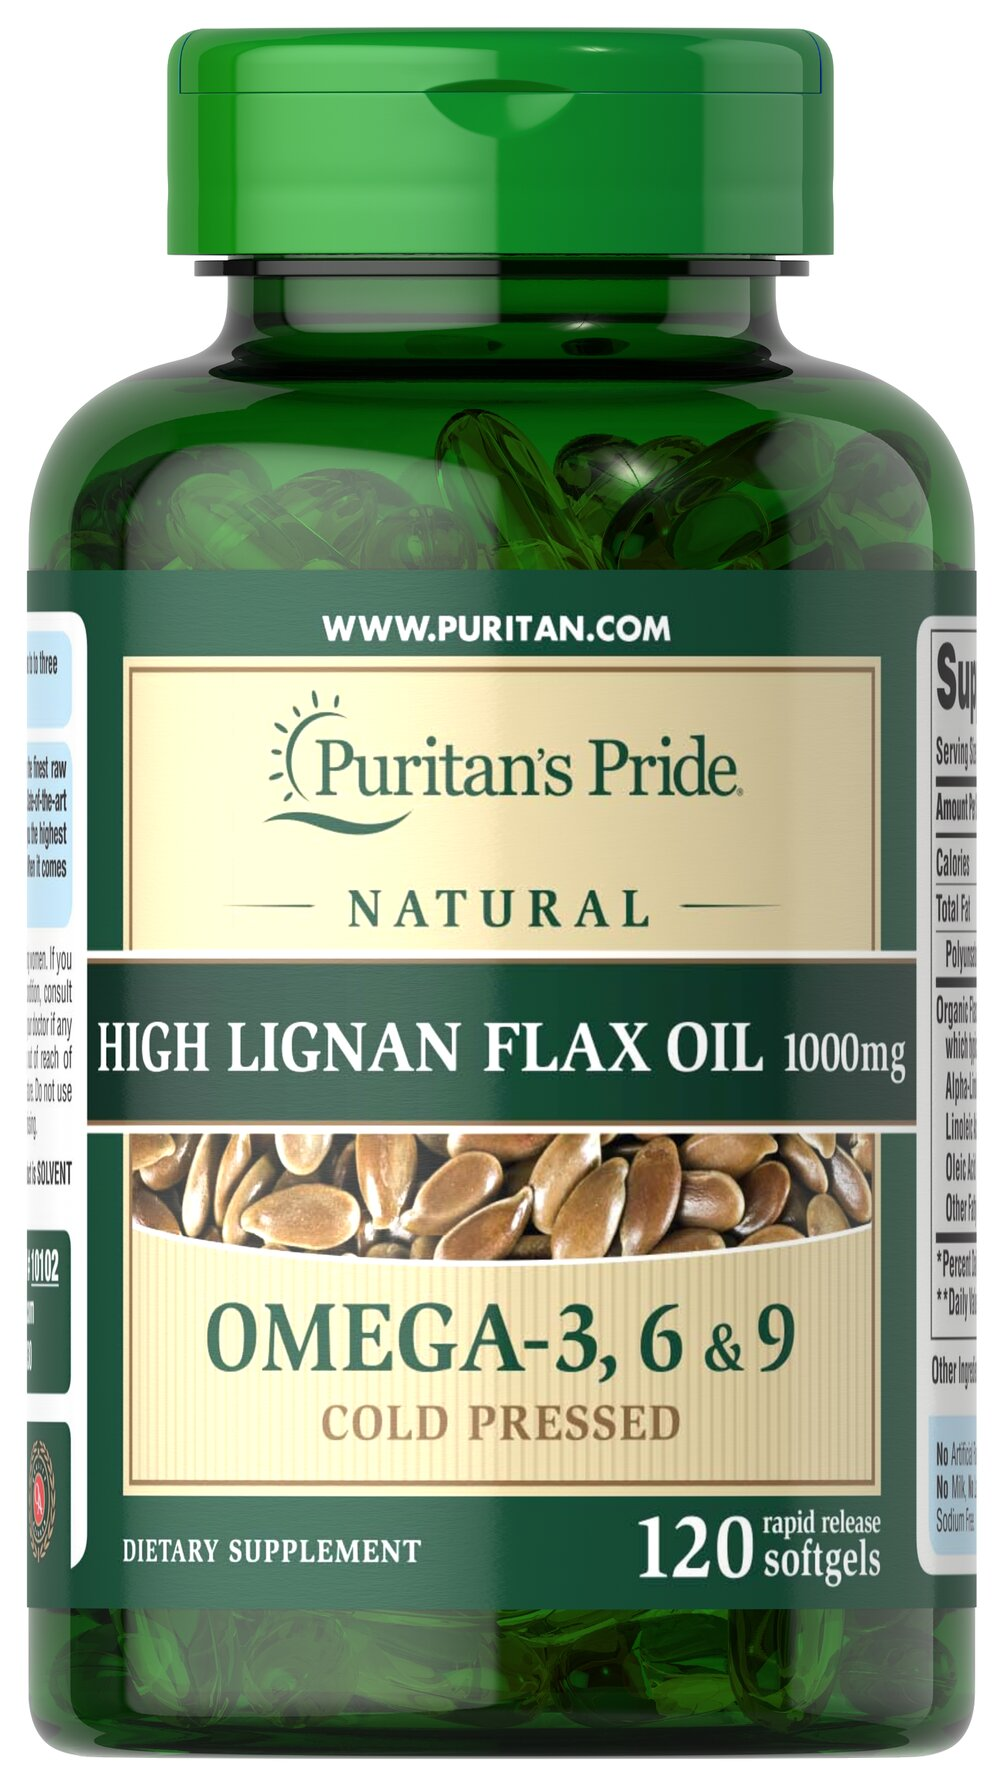 High Lignan Flax Oil 1000 mg <p><strong>Flax</strong> is one of the premium sources of <strong>Alpha-Linolenic Acid (Omega-3) and Linoleic Acid (Omega-6)</strong>, essential fatty acids that can't be made by the body and must be obtained from diet. Fatty acids play a role in providing an energy source for the body.** Our flax oil provides all these benefits, plus it's derived from 100% organic flax, which means it's free from chemicals, pesticides and he